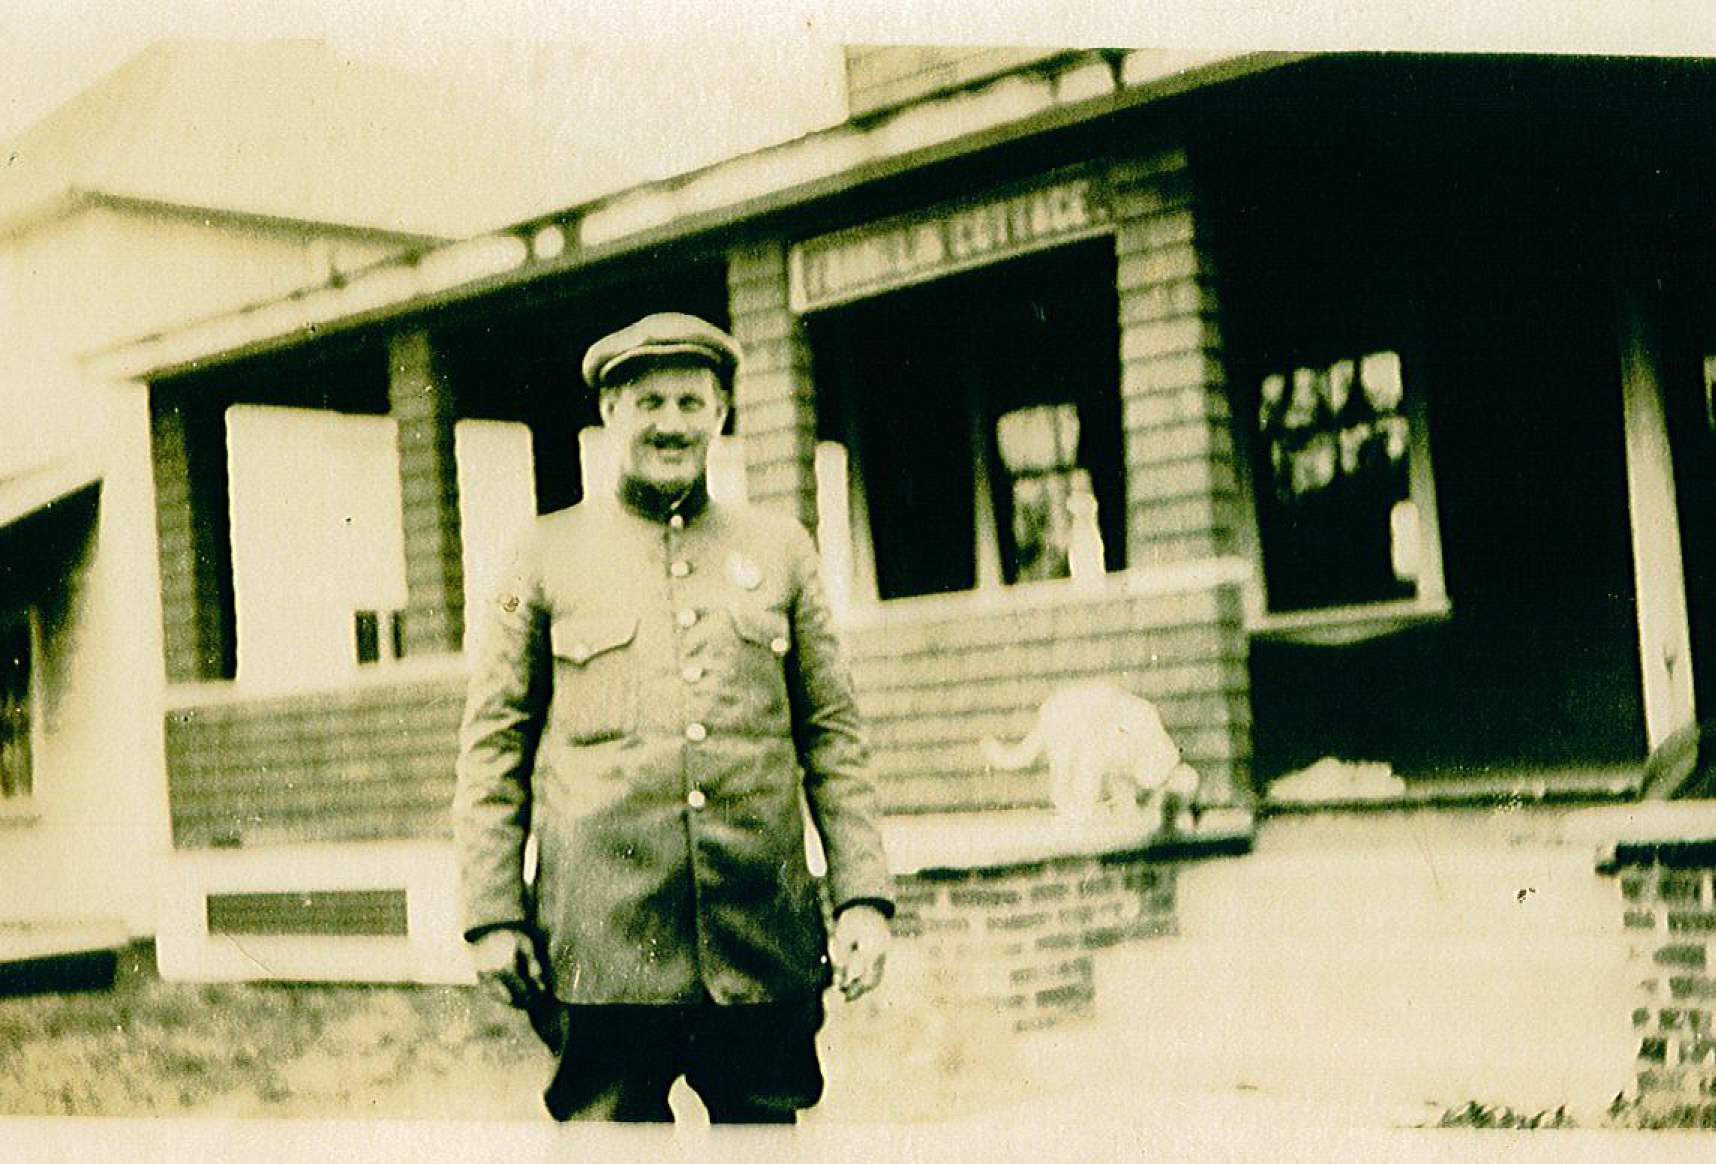 Inspector Ralph Cosmer Young   Connecticut Department of Motor Vehicles, Connecticut